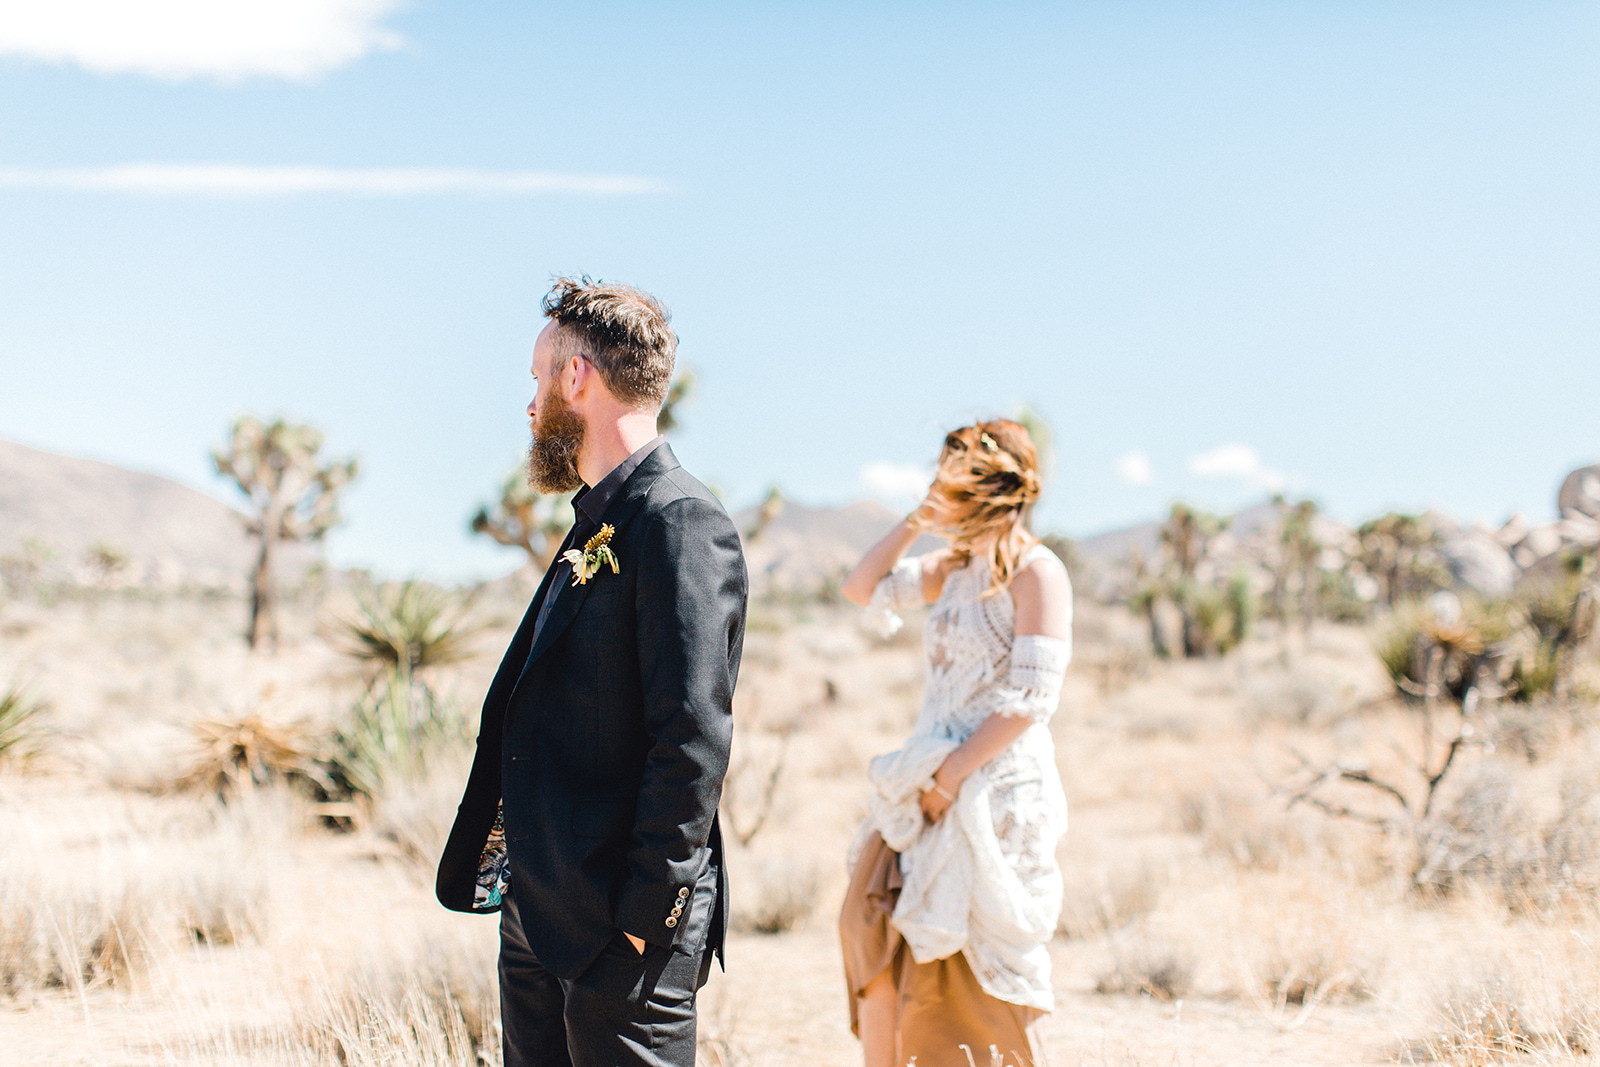 four corners photography highlights libby and cary (57 of 225)best atlanta wedding photographer joshua tree wedding atlanta wedding.jpg